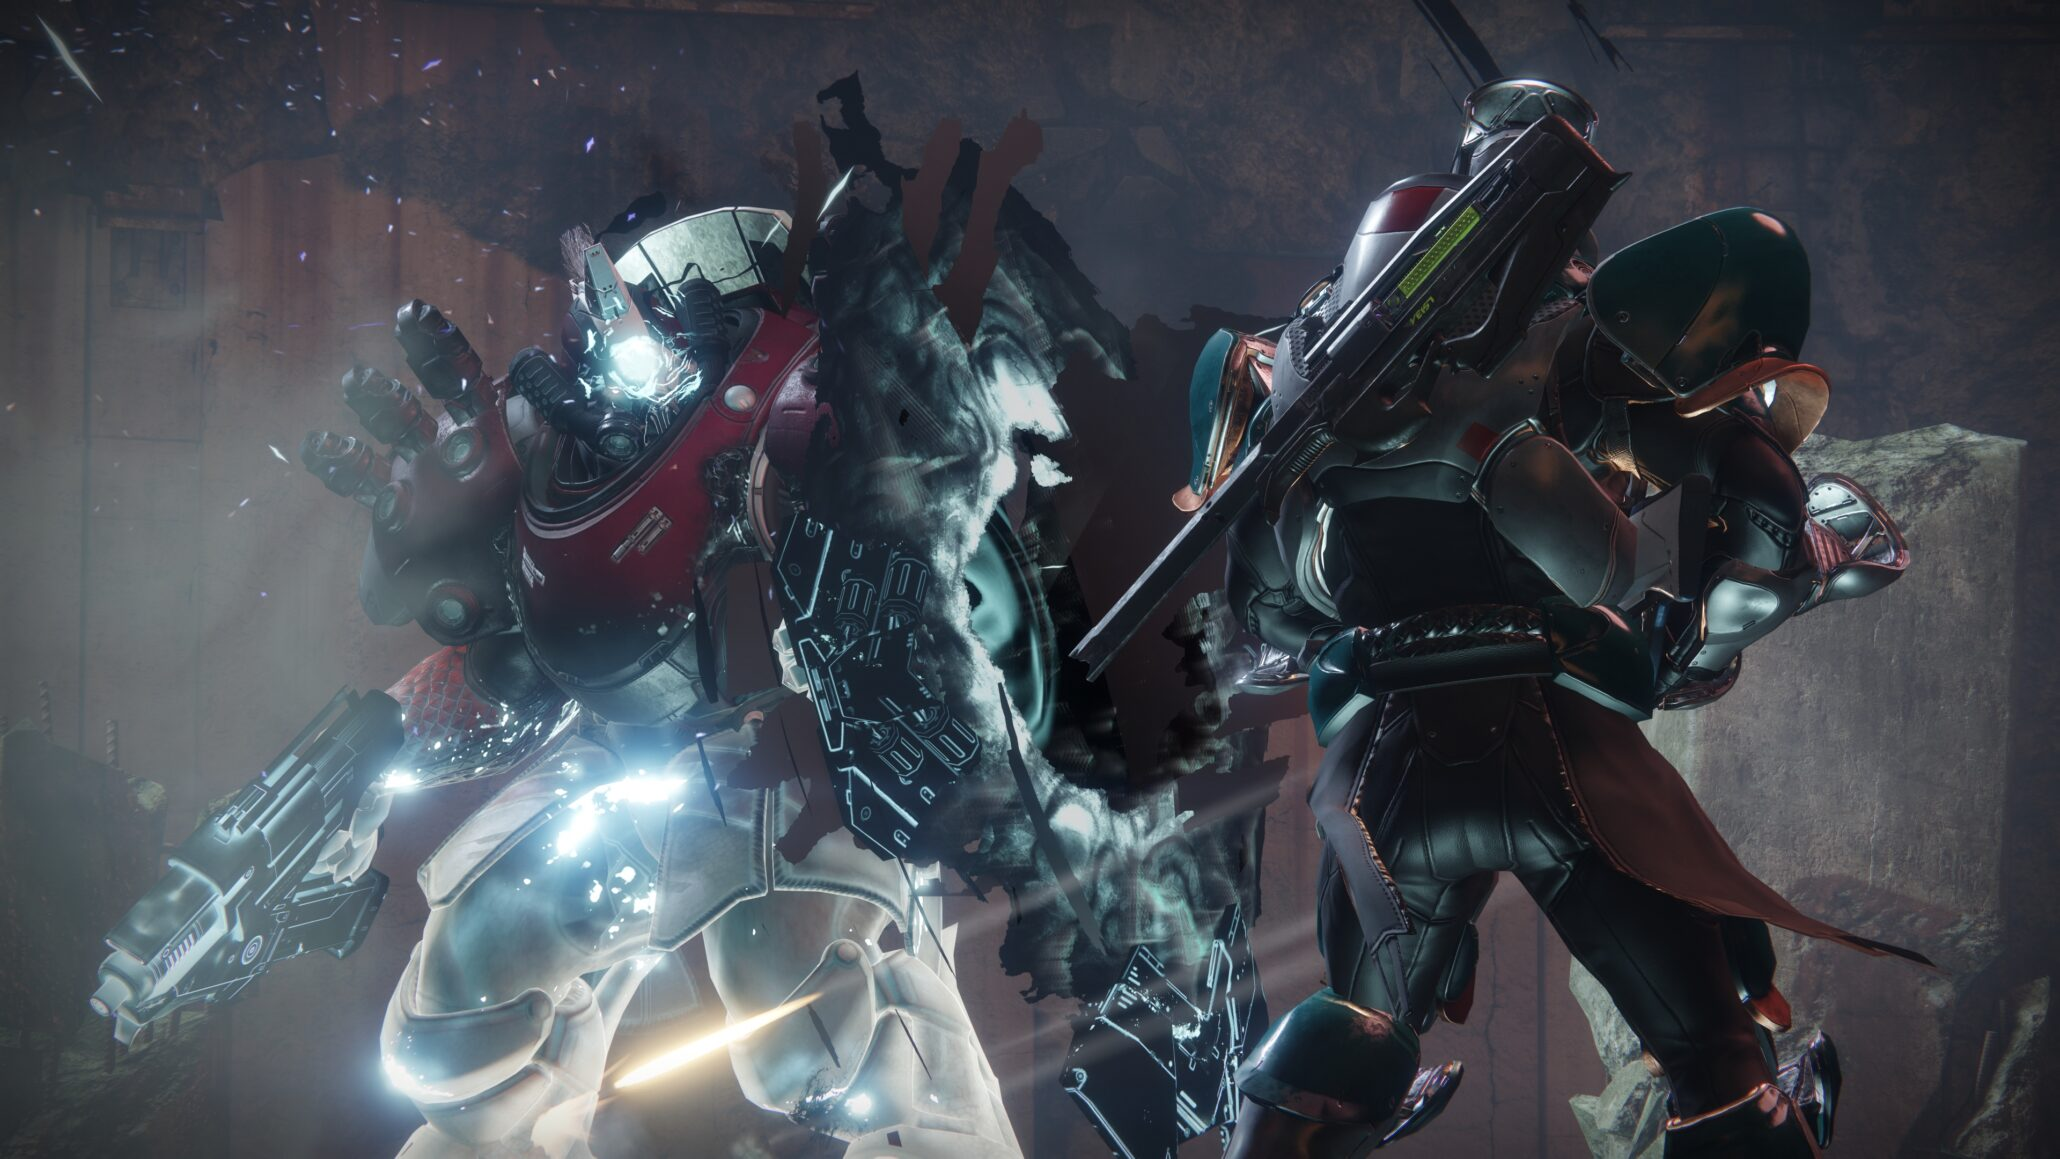 Destiny 2 Update 1 0 1 3 to Hit PS4/XO Next Week, Bungie Says